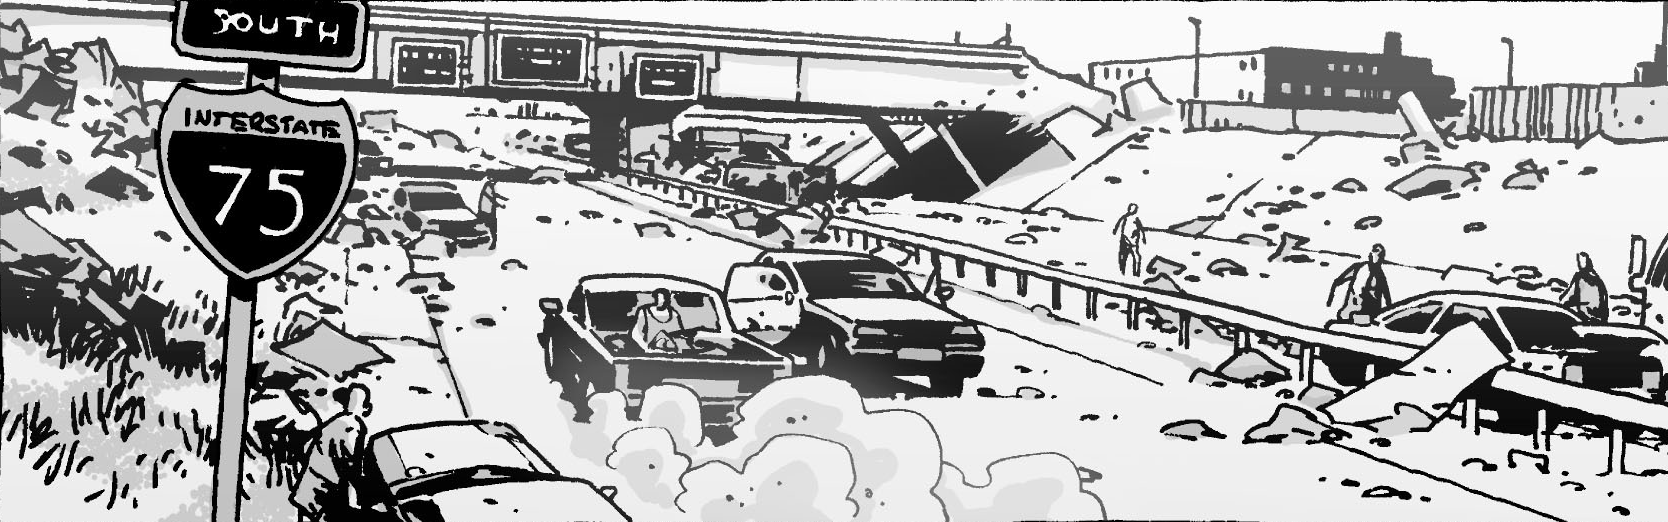 Interstate 75 (Comic Series)